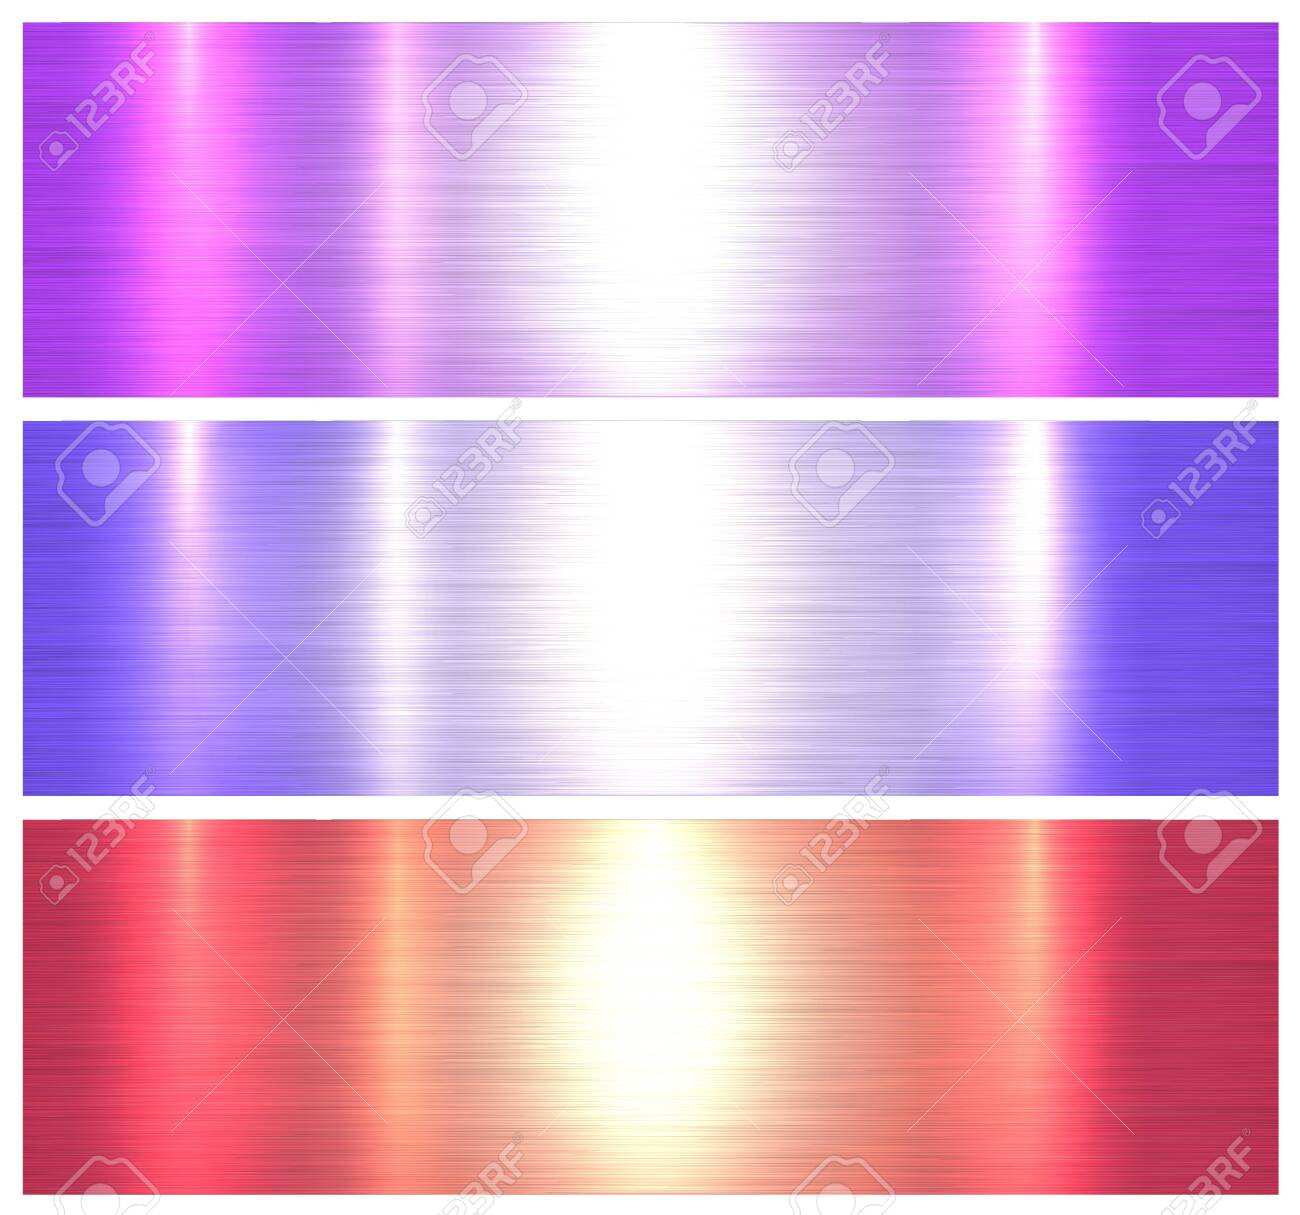 Metallic textures, colorful brushed metal backgrounds, vector illustration. - 150221358